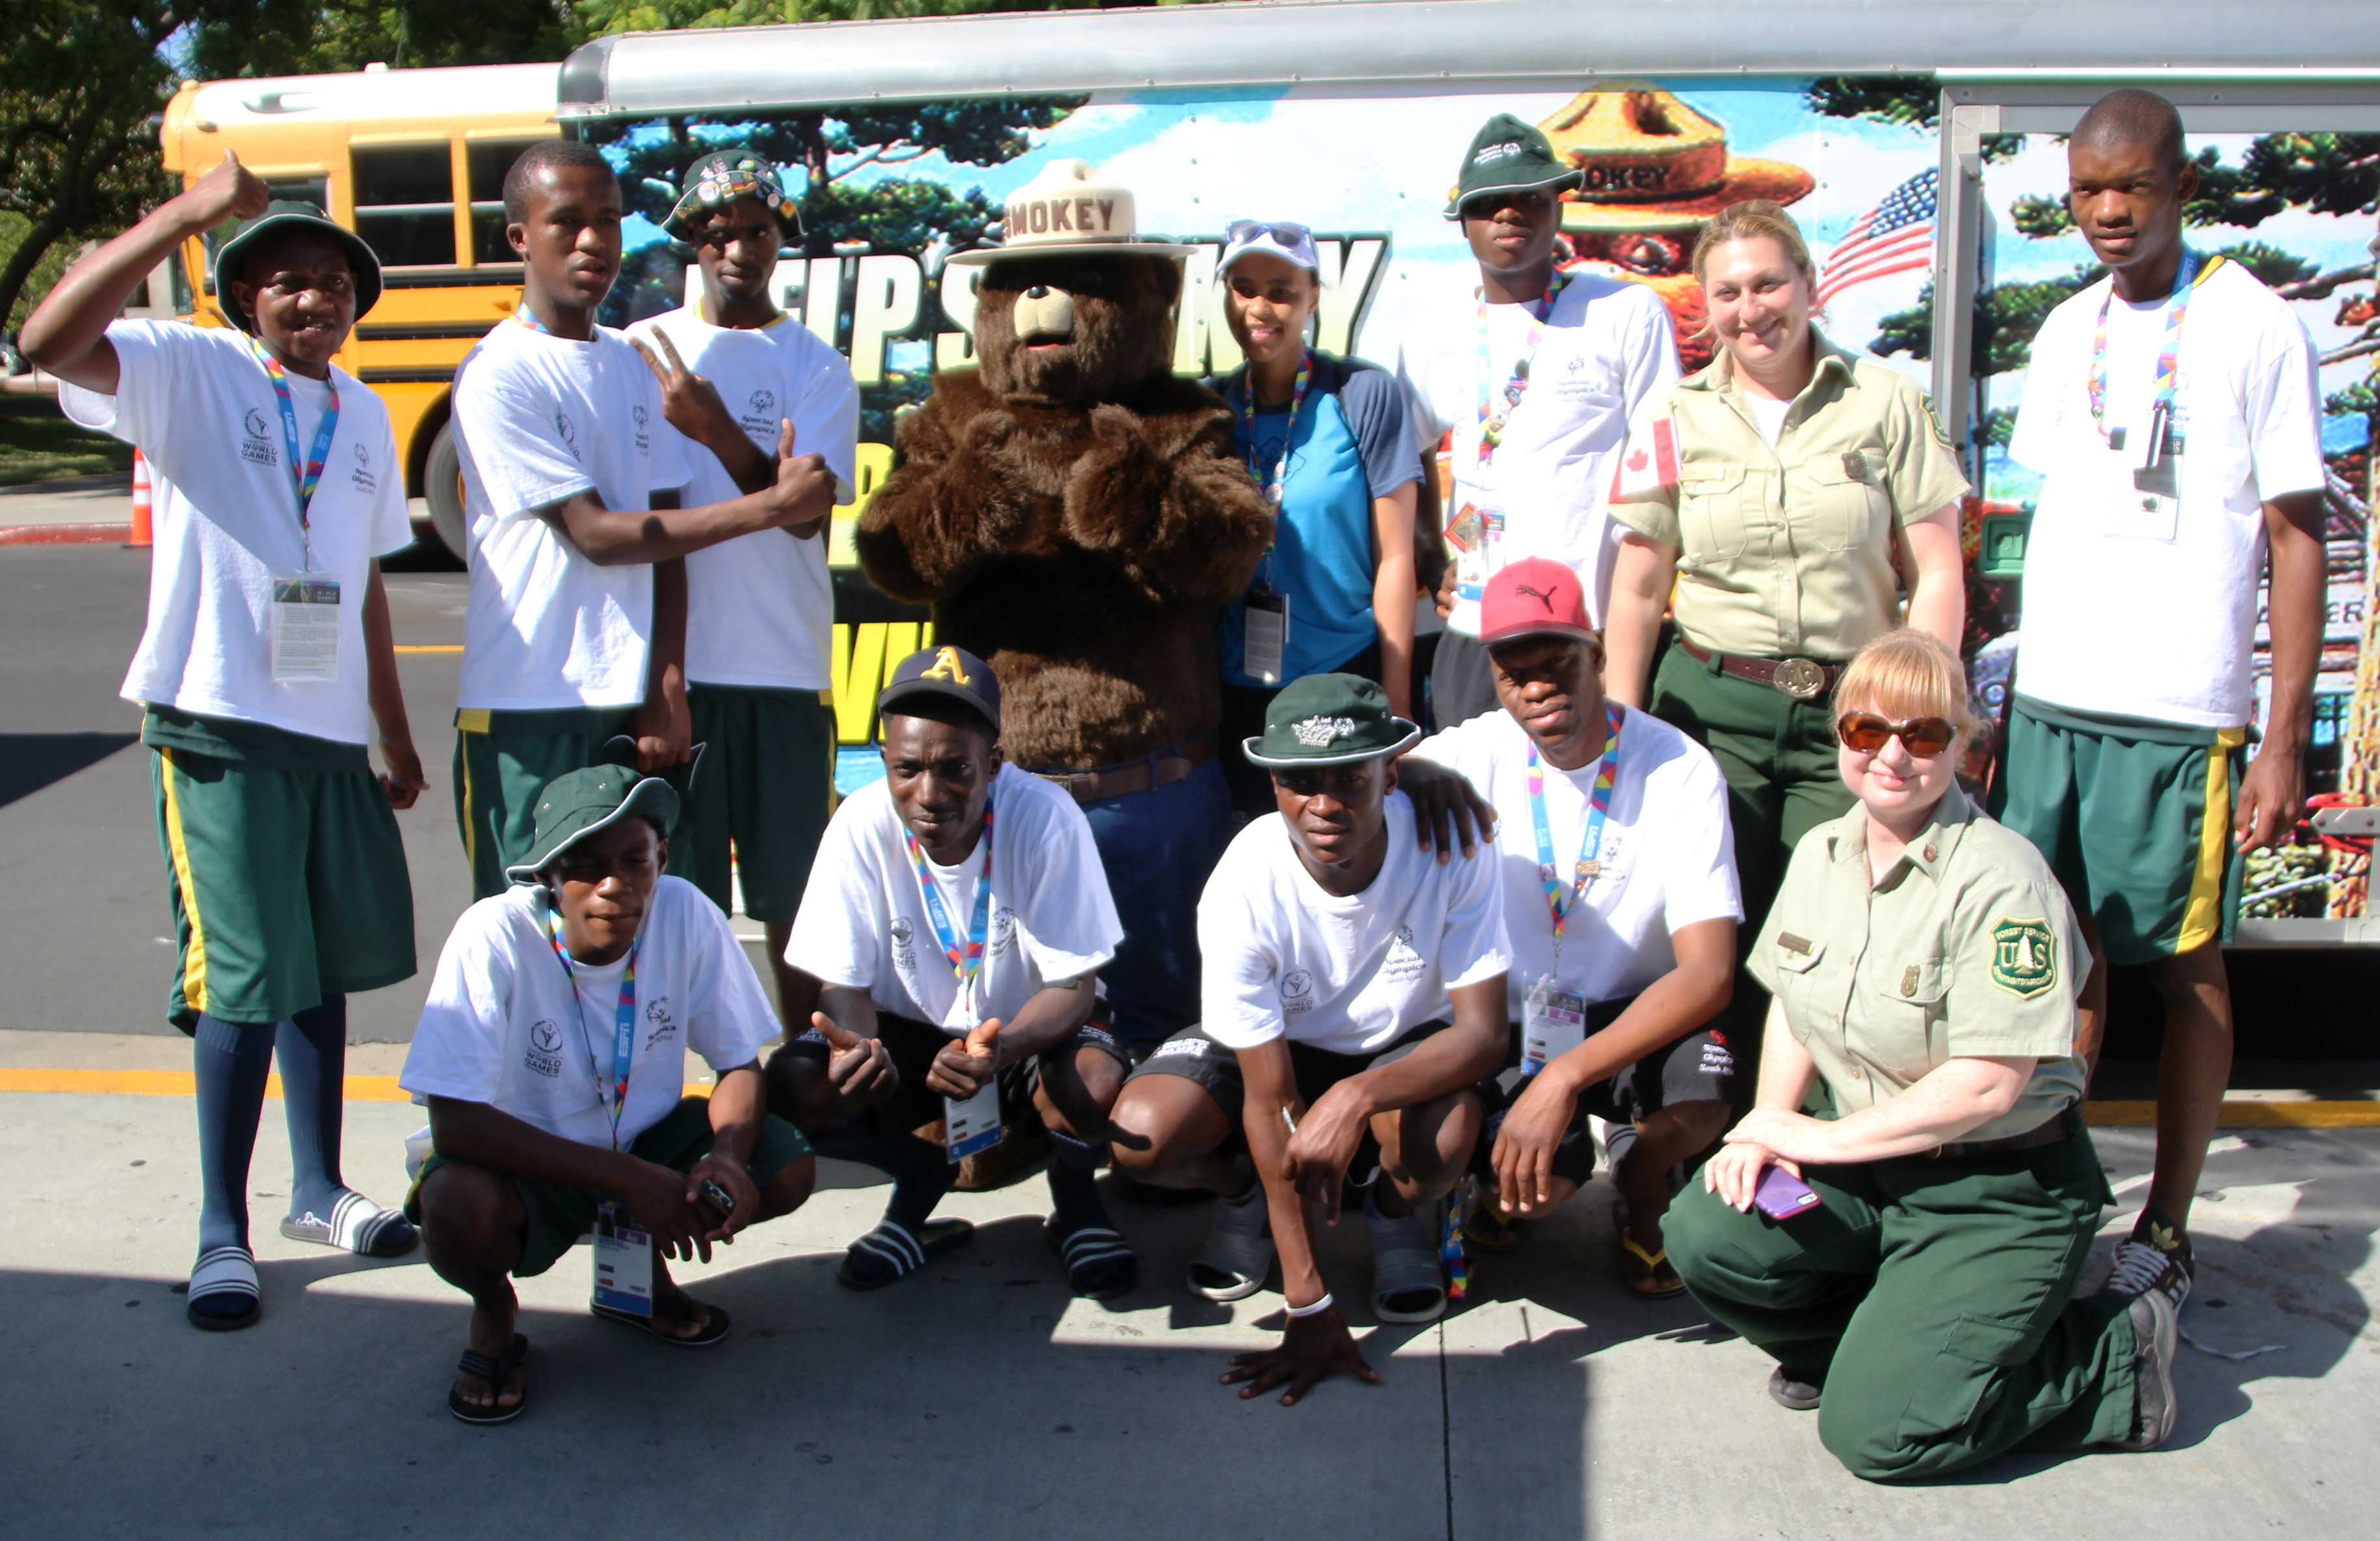 Smokey Bear and U.S. Forest Service employees pose for a picture with the South African team at the World Special Olympics in Los Angeles.